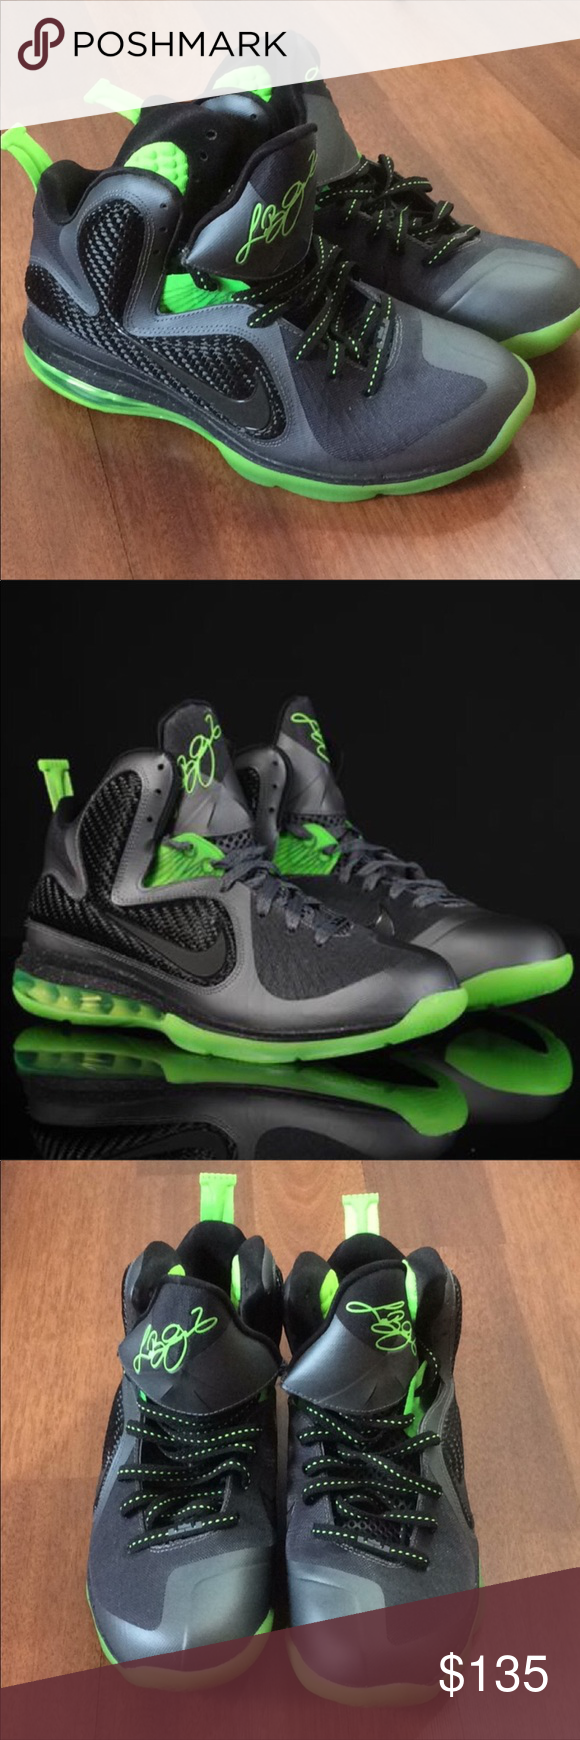 pretty nice c7f0c 9e2ce ⭐️Nike Lebron 9 IX Dunkman size 10 Lebron 9 Dunkman Mens Shoe size 10 Dark  Gray Black Volt. They are like new condition only worn a few times.